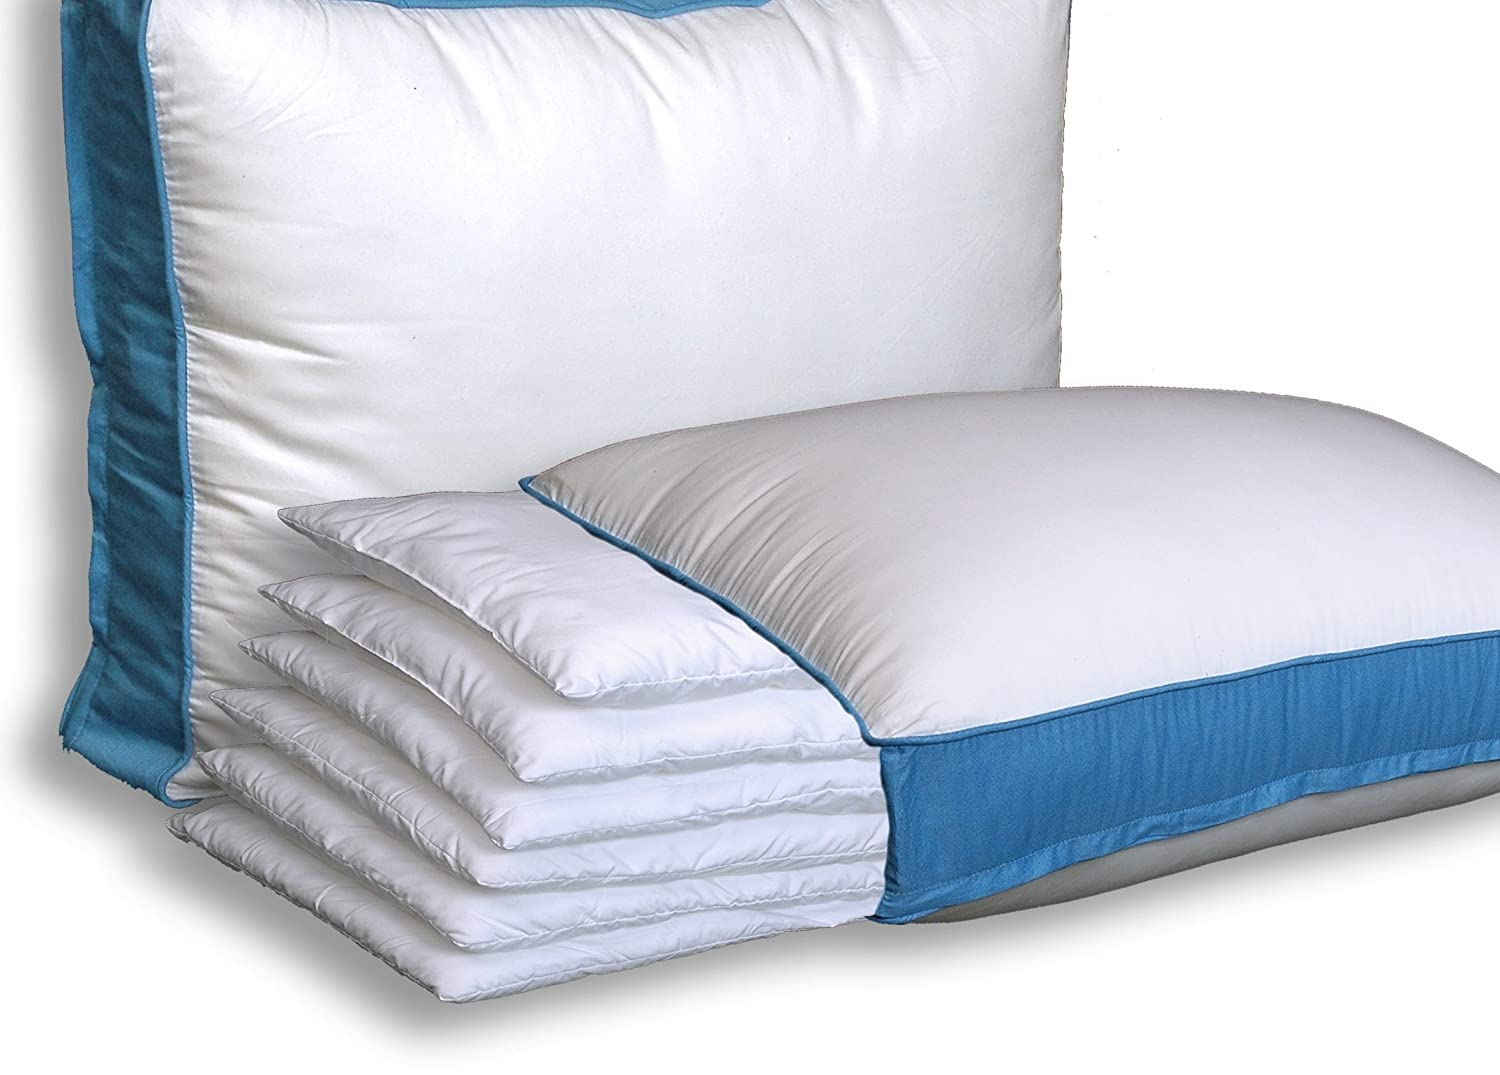 Pancake Pillow The Adjustable Layer Pillow (Best Pillow for Stomach Sleepers with Neck Pain)